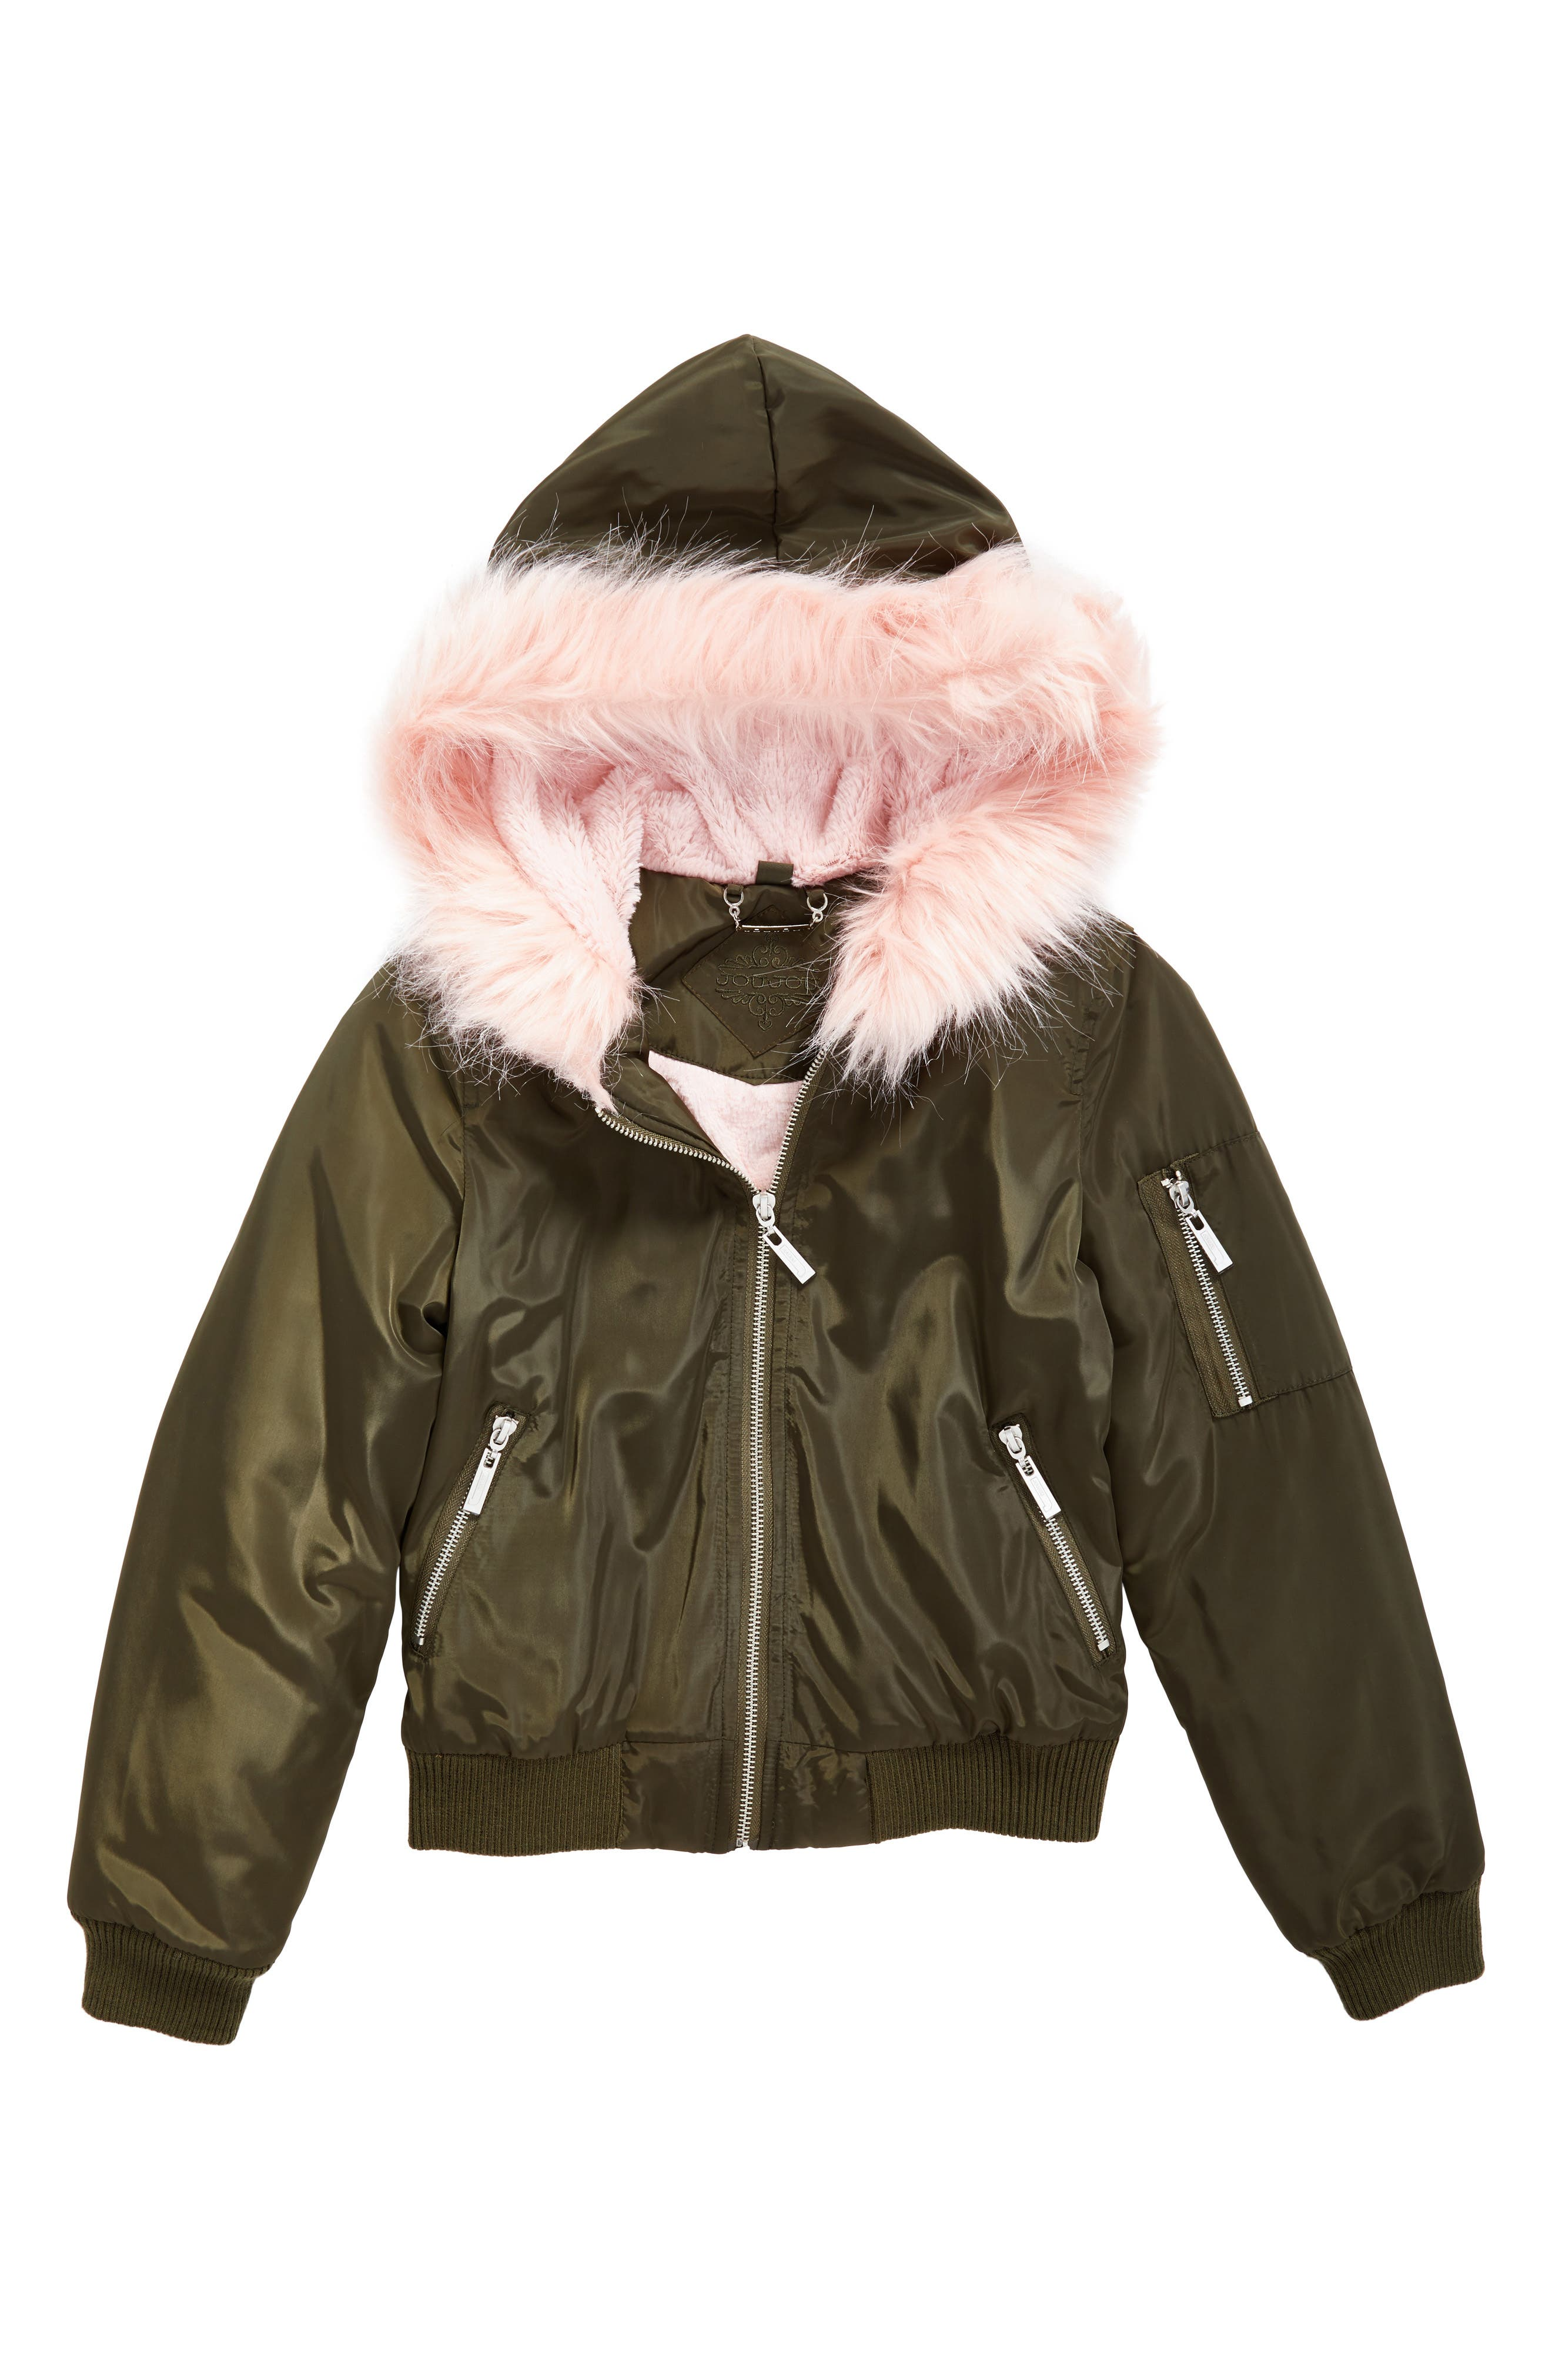 Jou Jou Hooded Bomber Jacket with Faux Fur Trim (Big Girls)